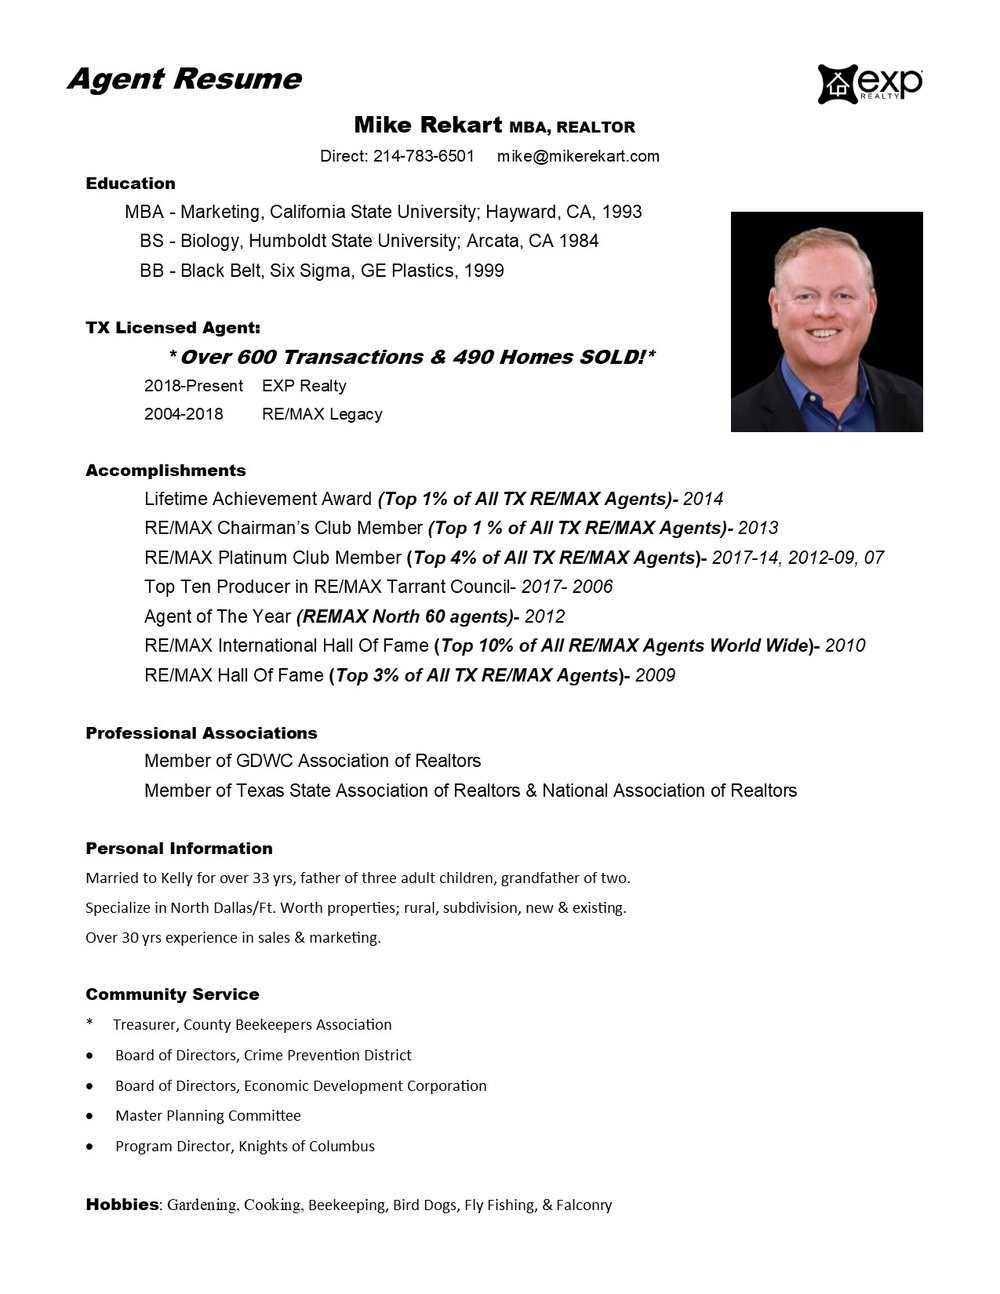 Mike's Resume_2018exp.jpg